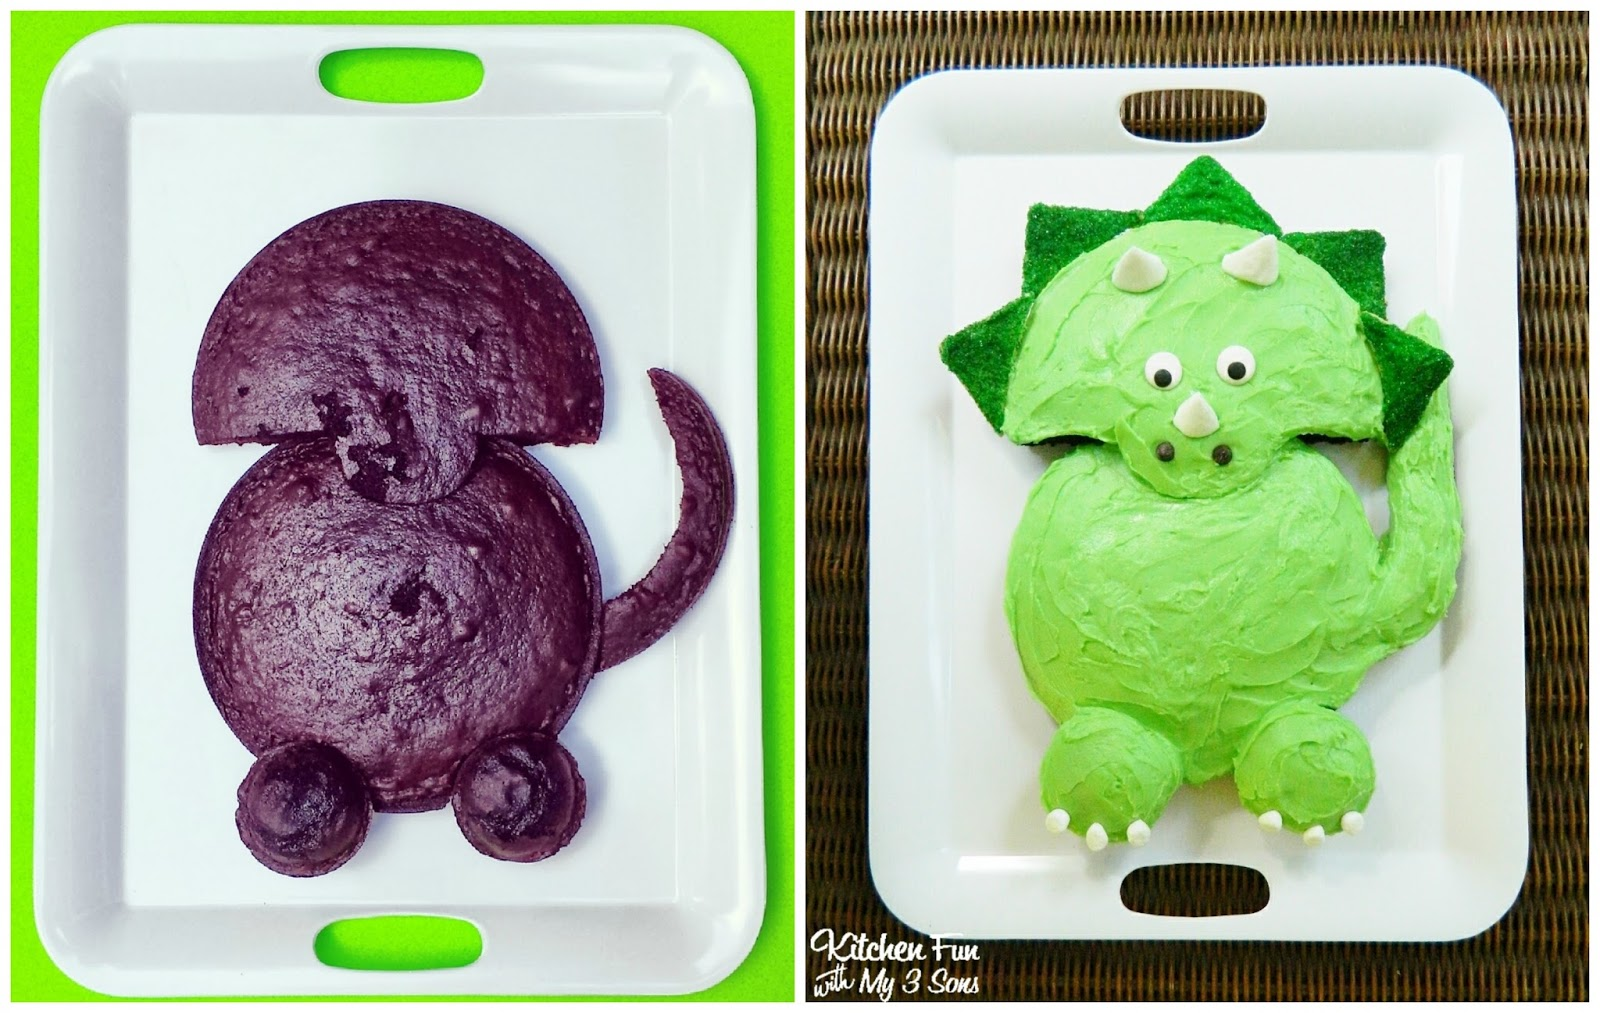 Kitchen fun with my 3 sons dinosaur party for my now 4 for How to make a dinosaur cake template